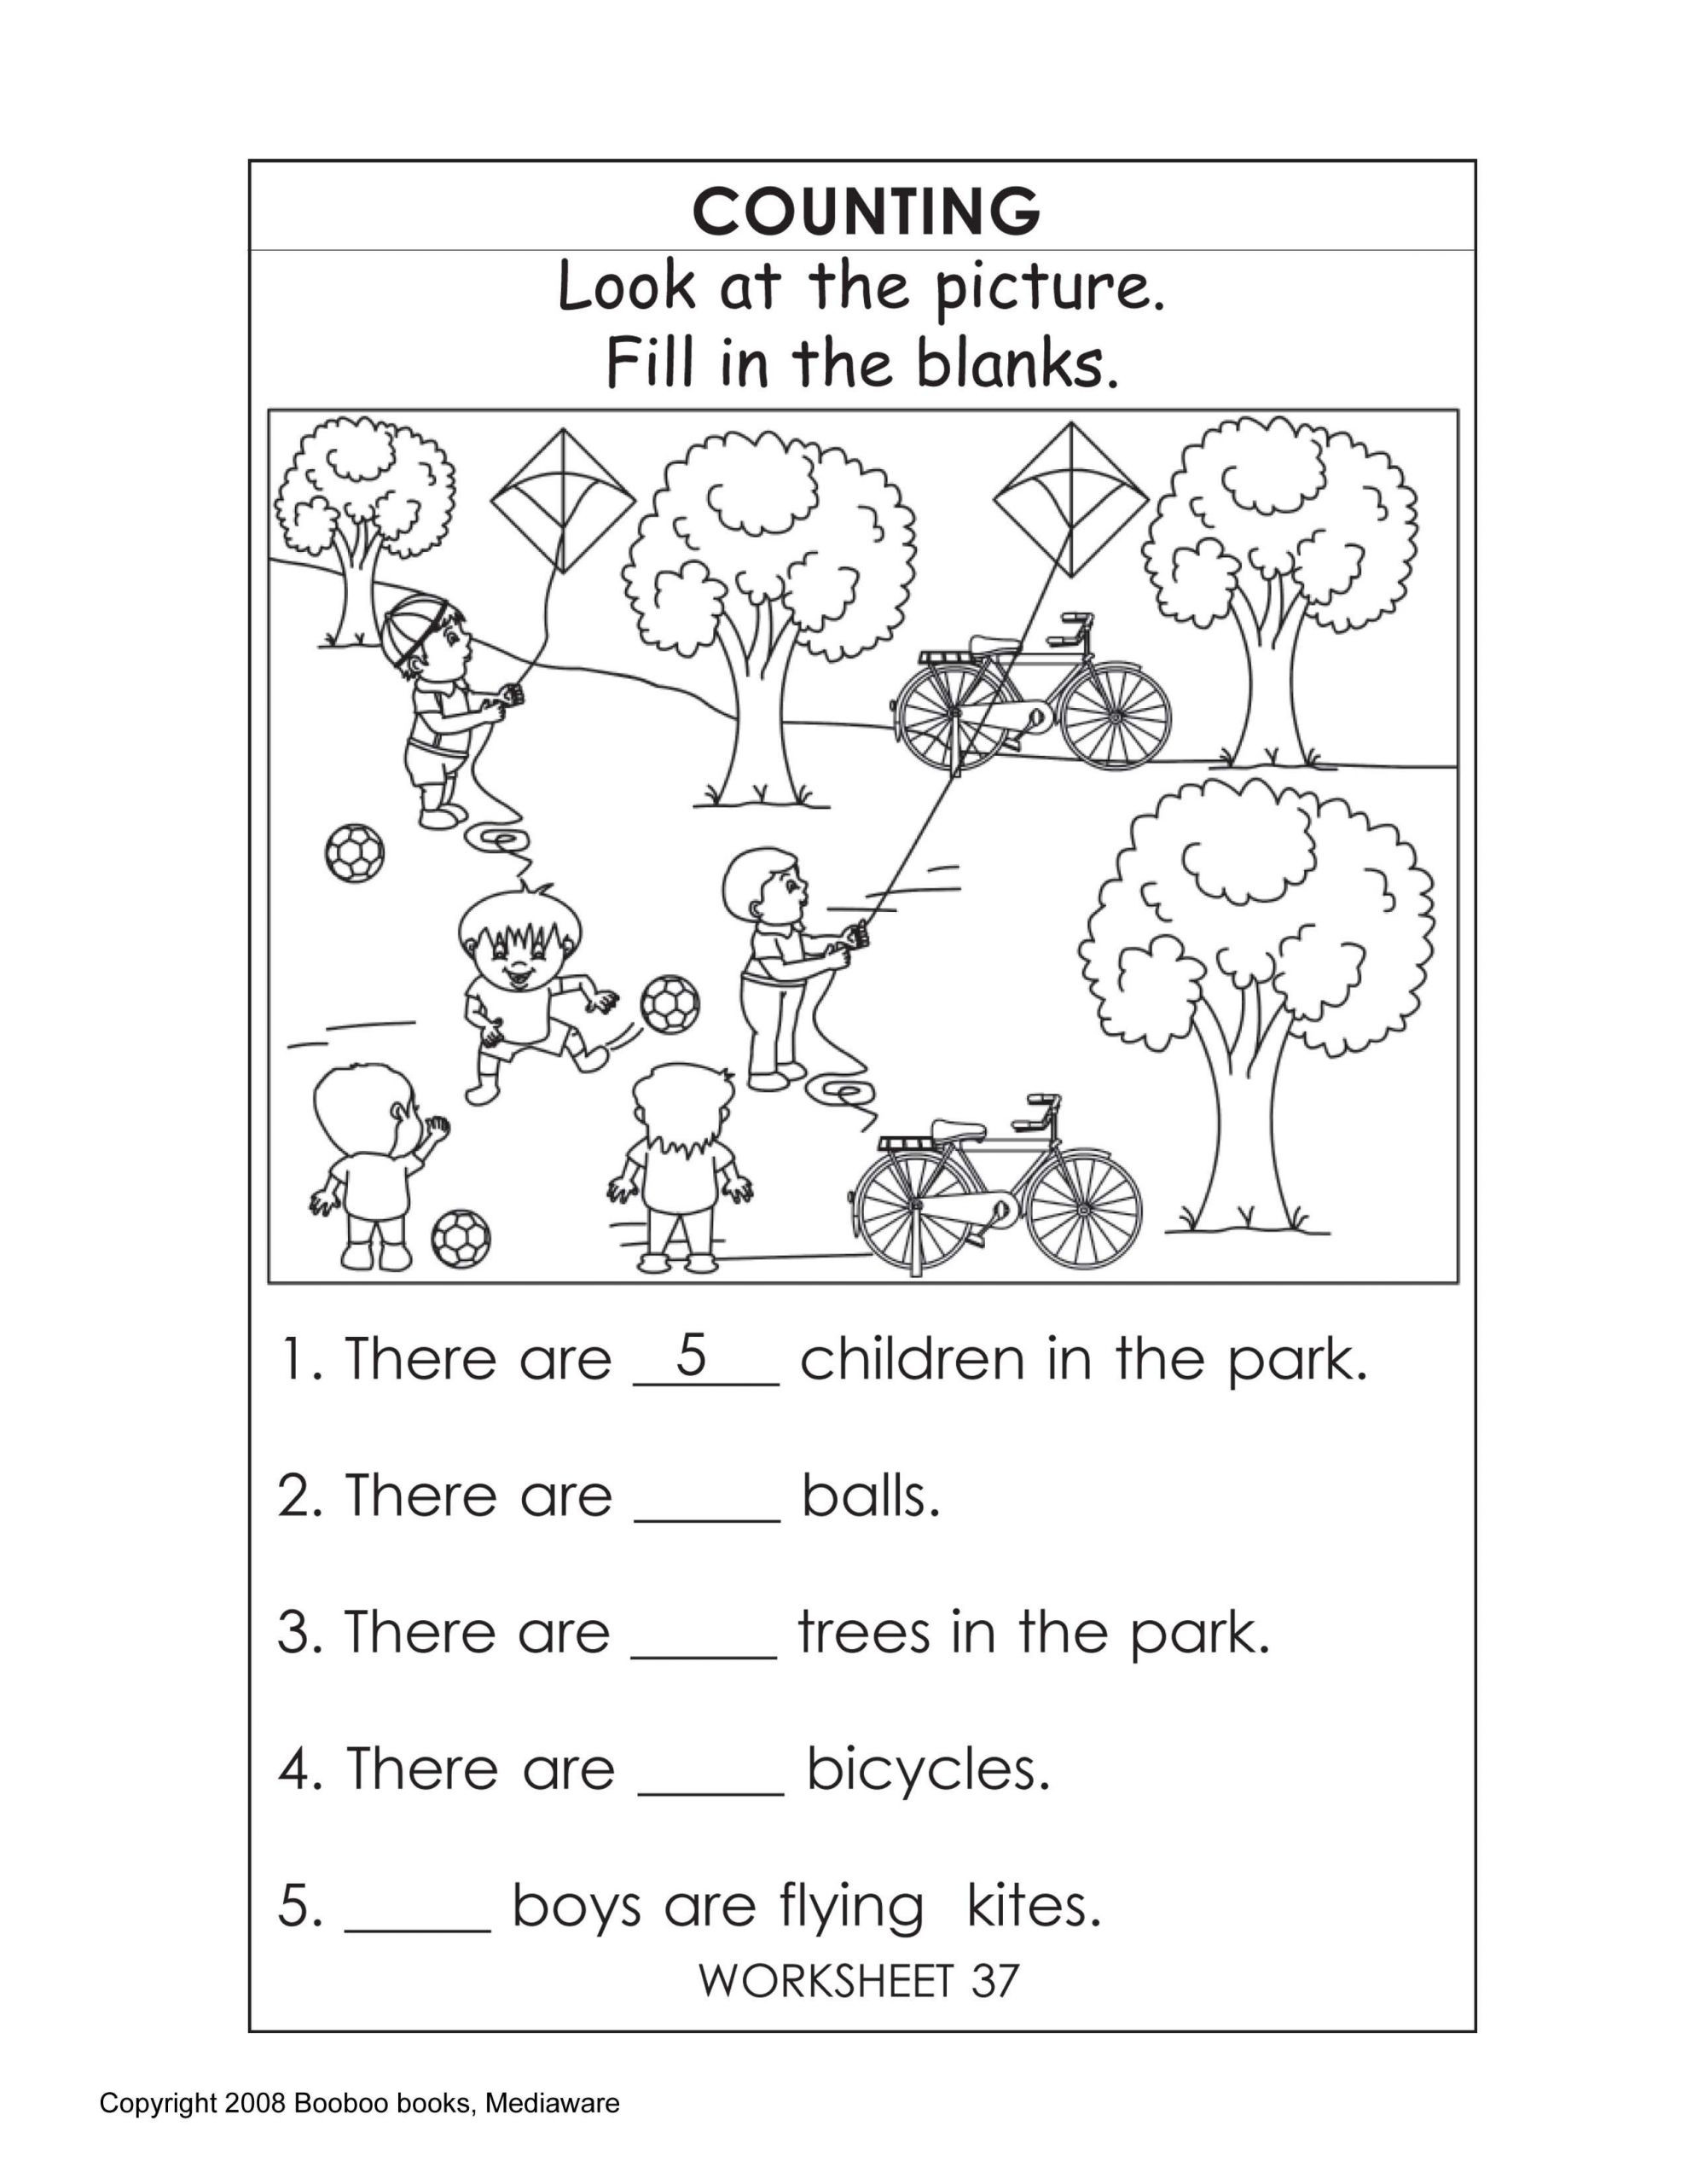 Grammar Worksheet First Grade Parallel Lines and Triangles Worksheet Coloring Pineapple